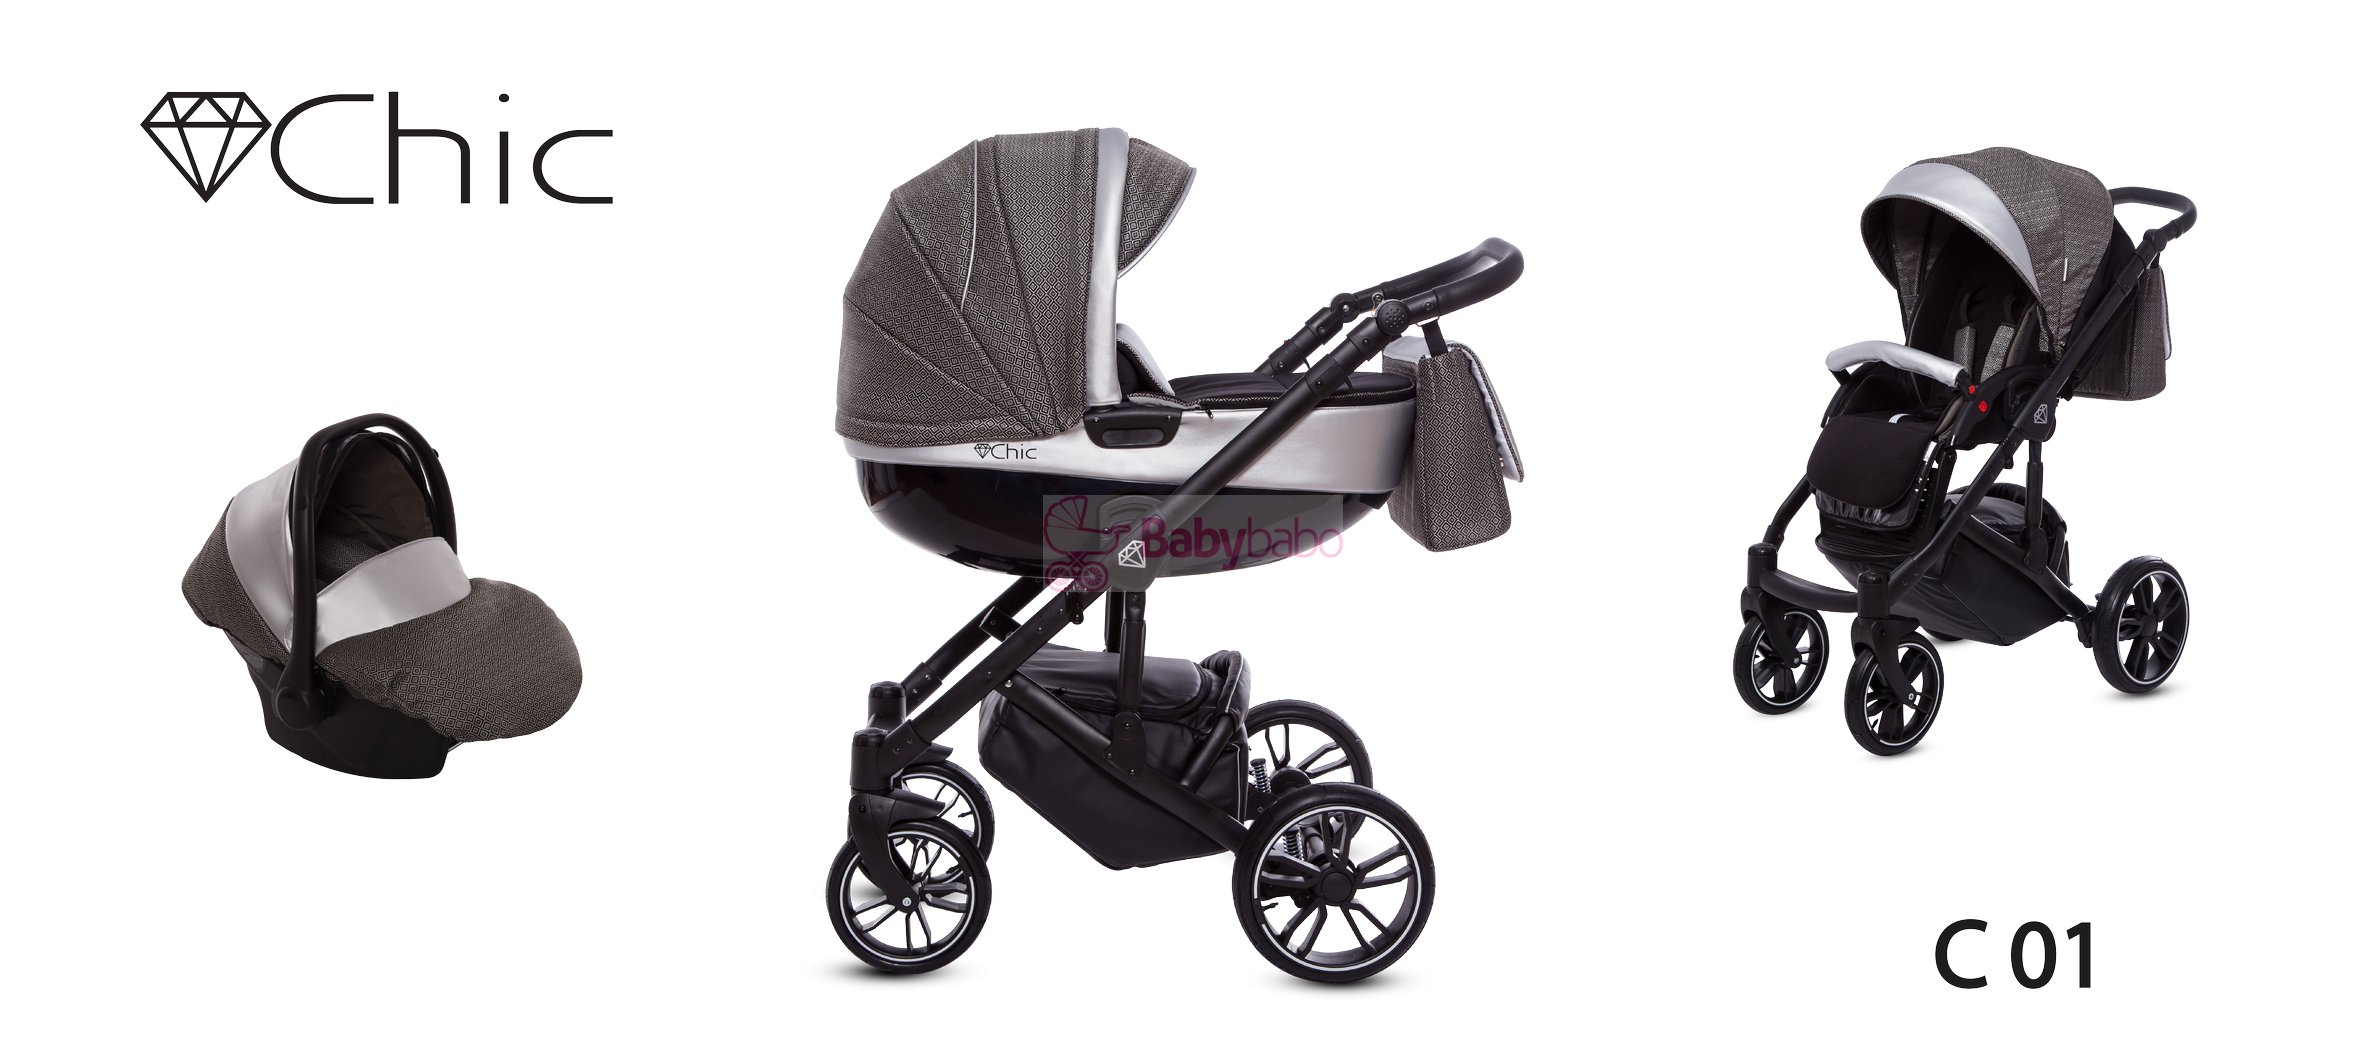 BABY ACTIVE - CHIC 2019, col. 01